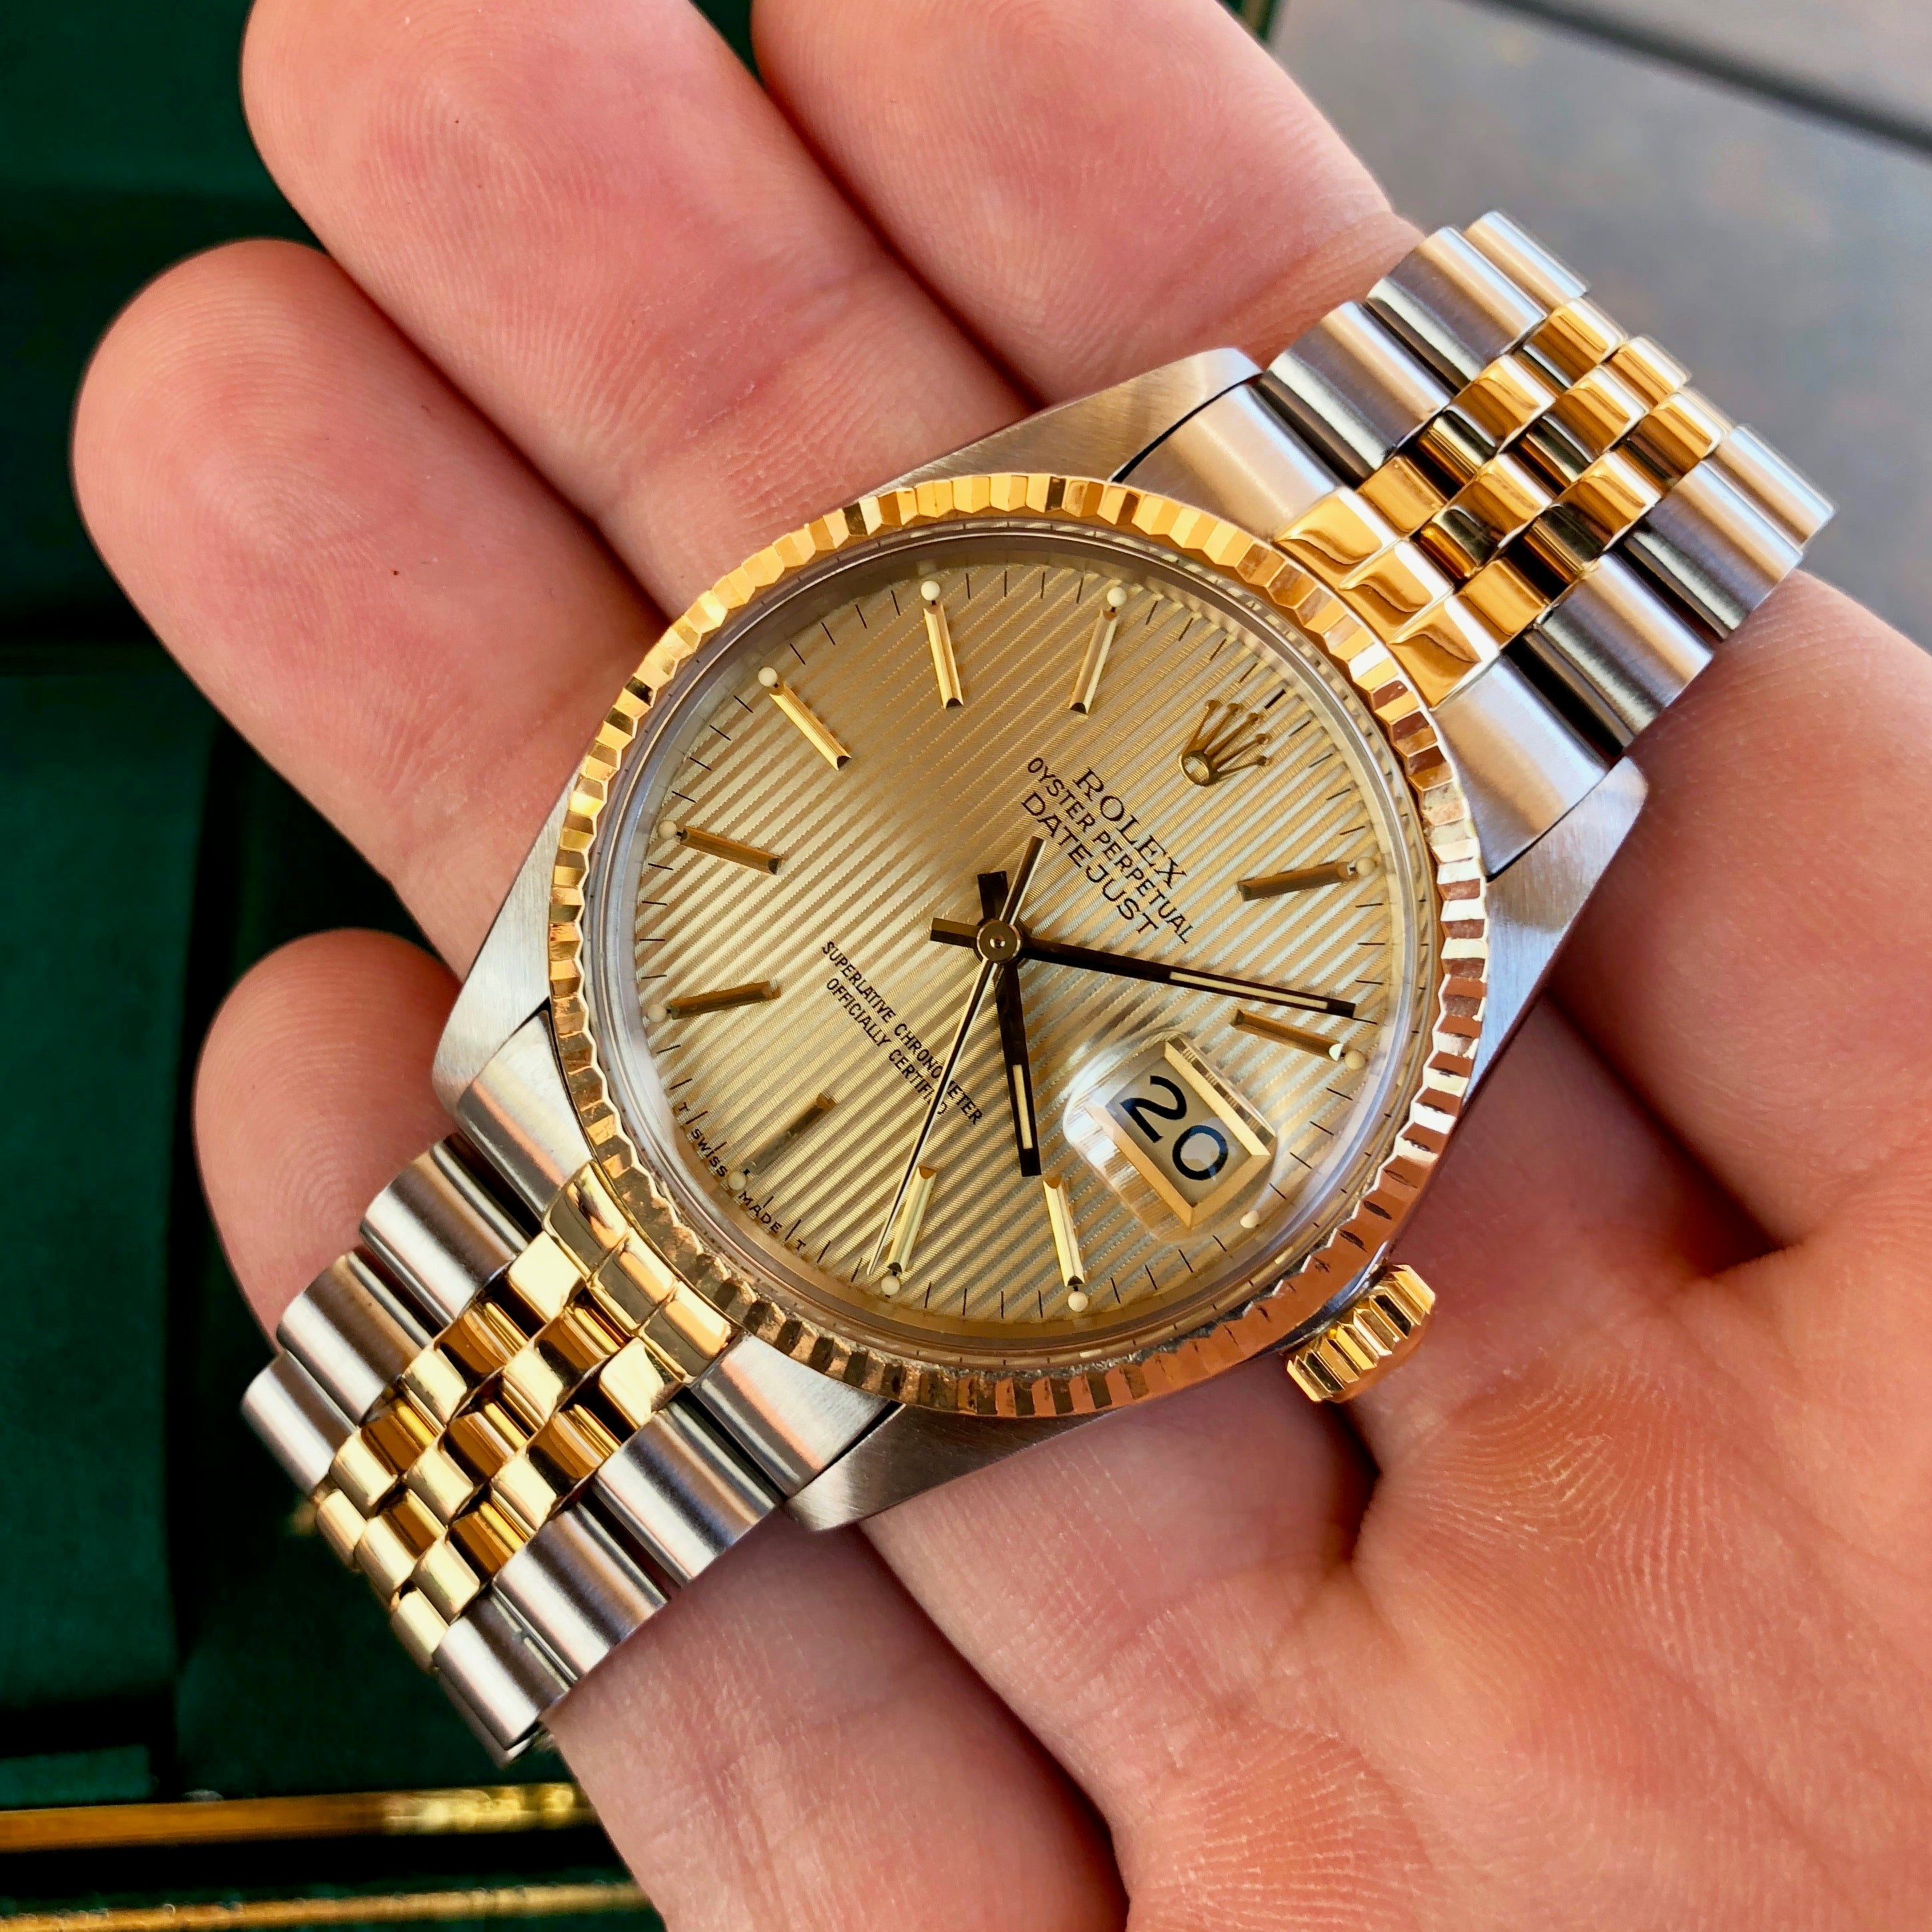 Vintage Rolex Datejust 16013 Champagne Tapestry Cal. 3035 Oyster Perpetual Two Tone Steel Gold Wristwatch Box & Papers Circa 1985 - Hashtag Watch Company